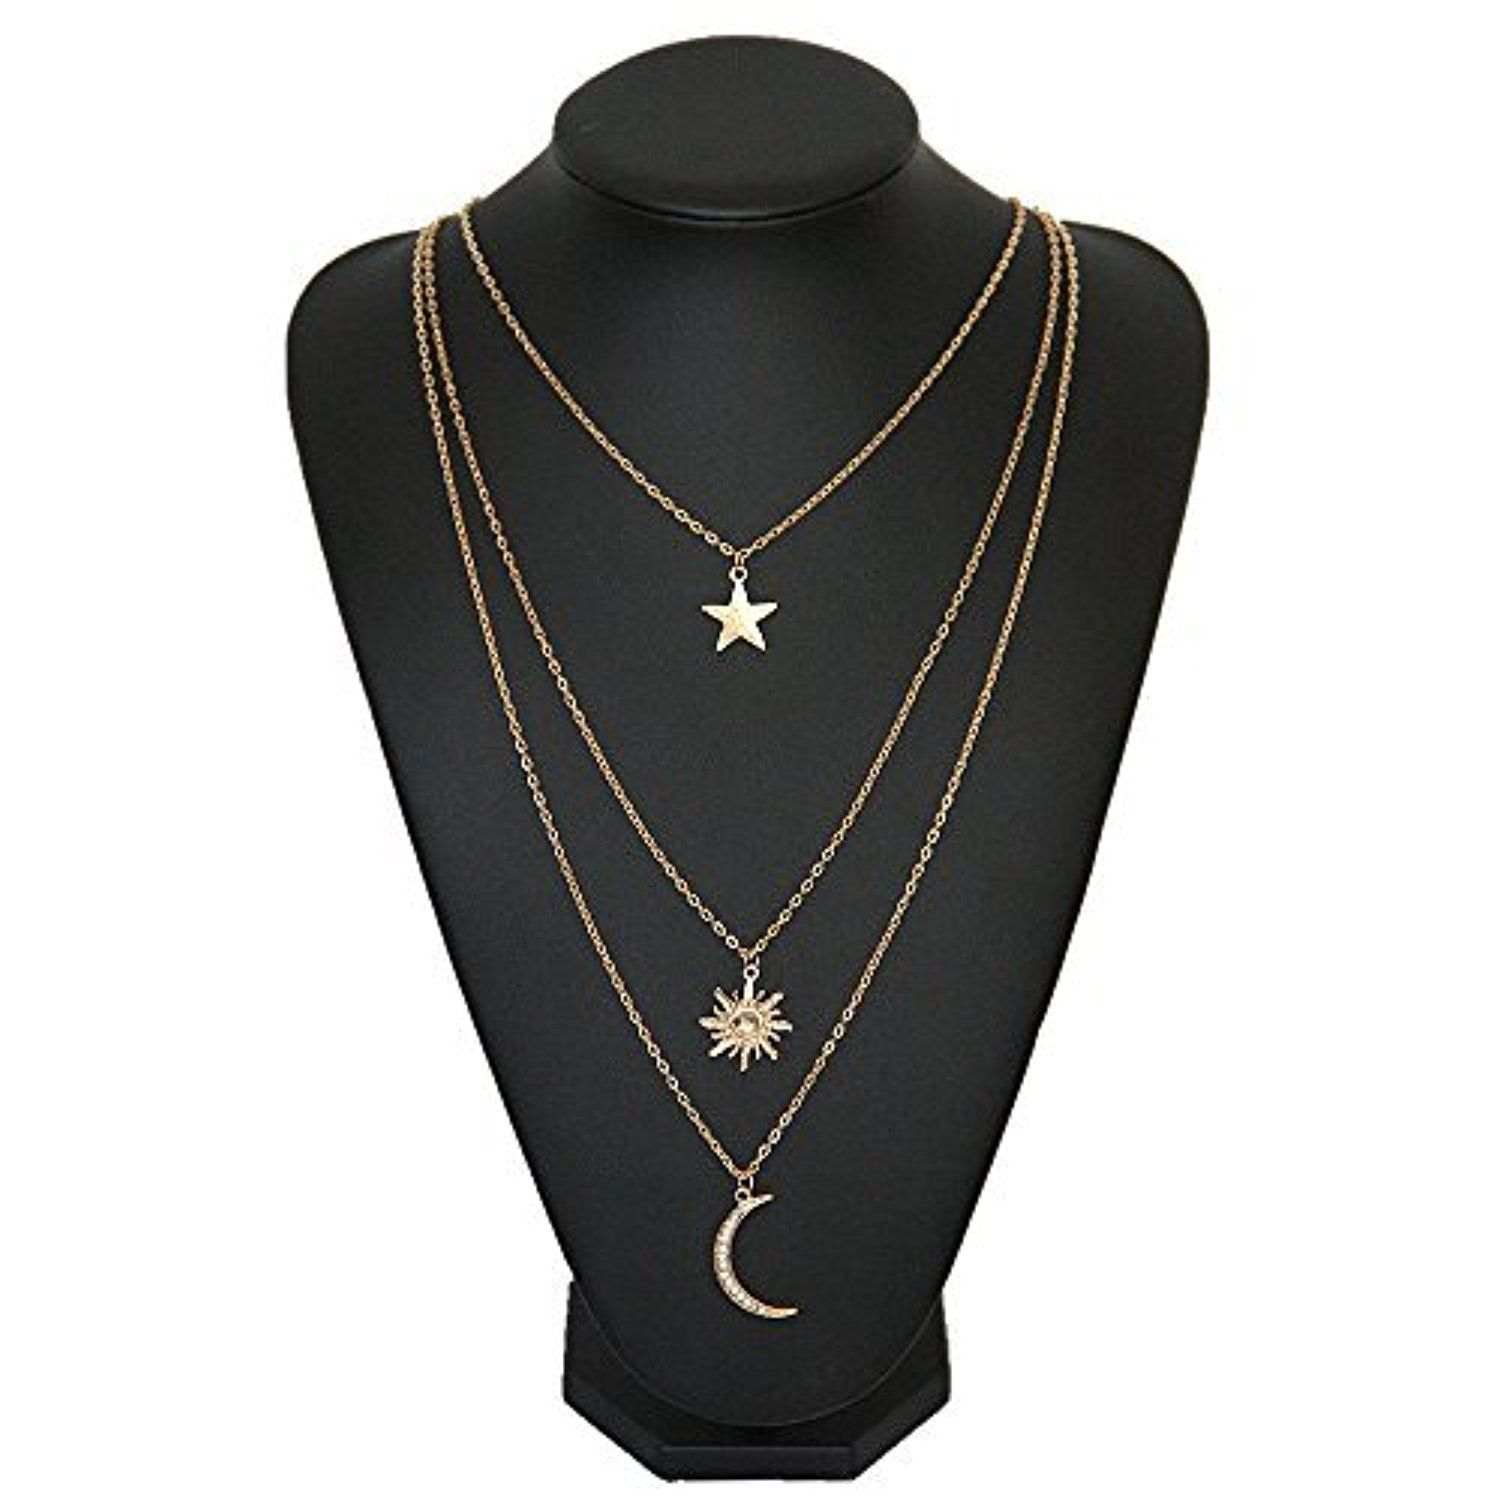 JoJo   Lin Fashion Cutout Multi Layered Gold Chain Crystal Star Moon and  Sun Pendant Necklace for Women by JoJo   Lin -- Awesome products selected  by Anna ... 31c027f064d9